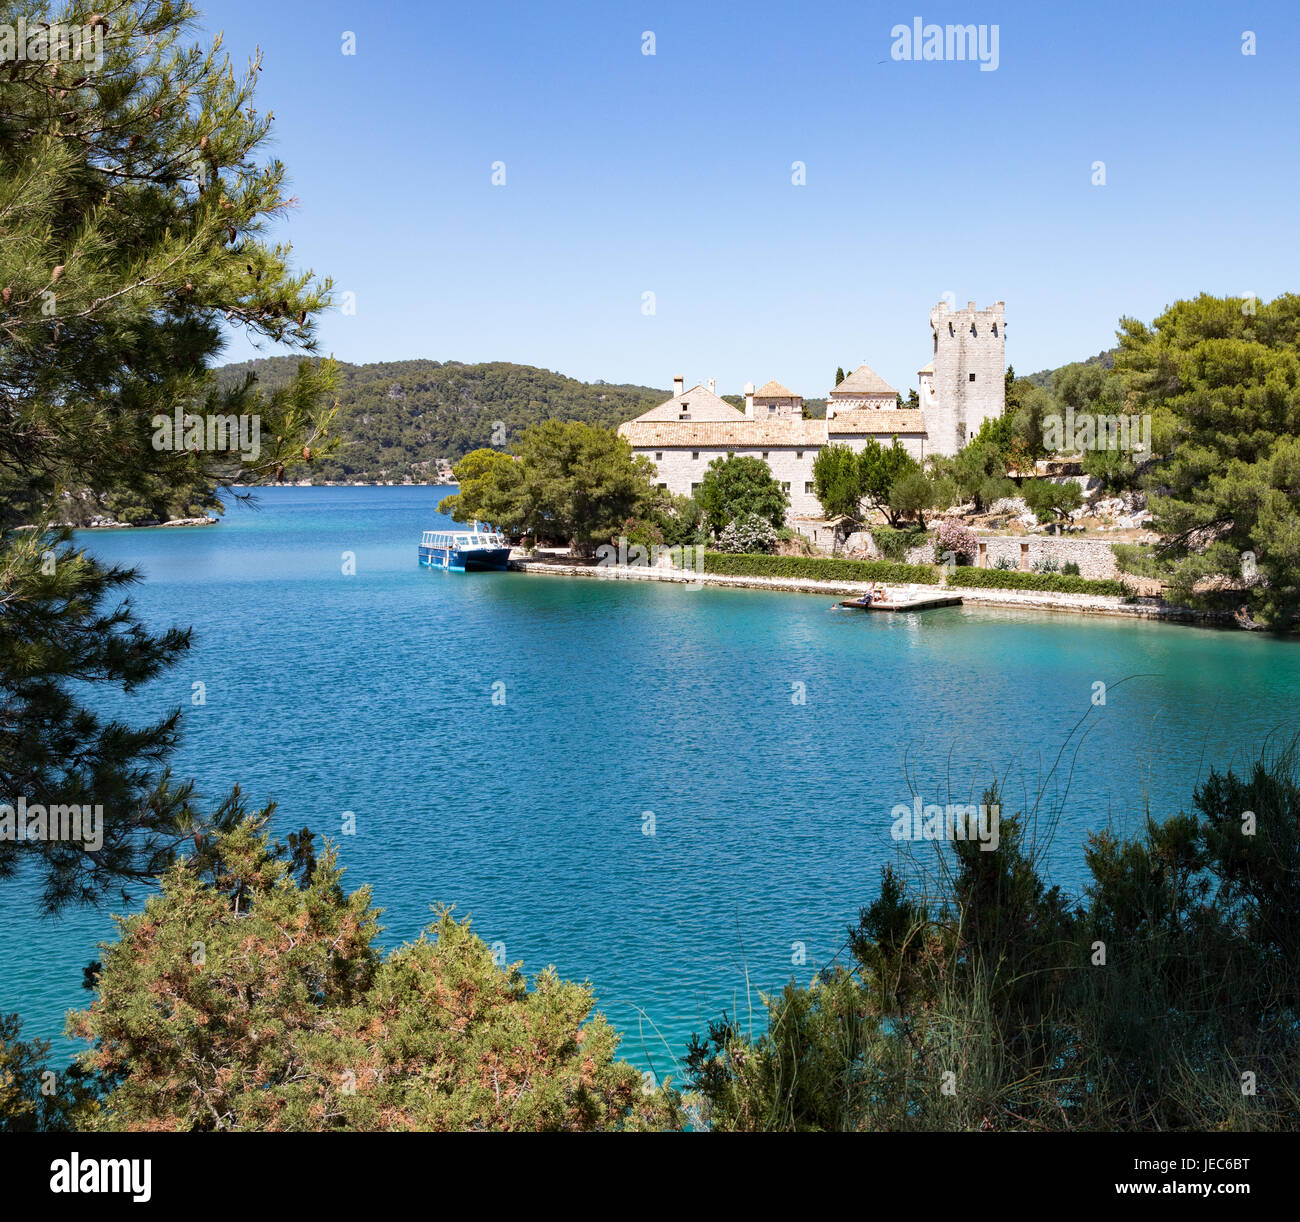 The Benedictine monastery on tiny St Mary's island in Veliko Jezero a sea lake on the island of Mljet in Croatia - Stock Image